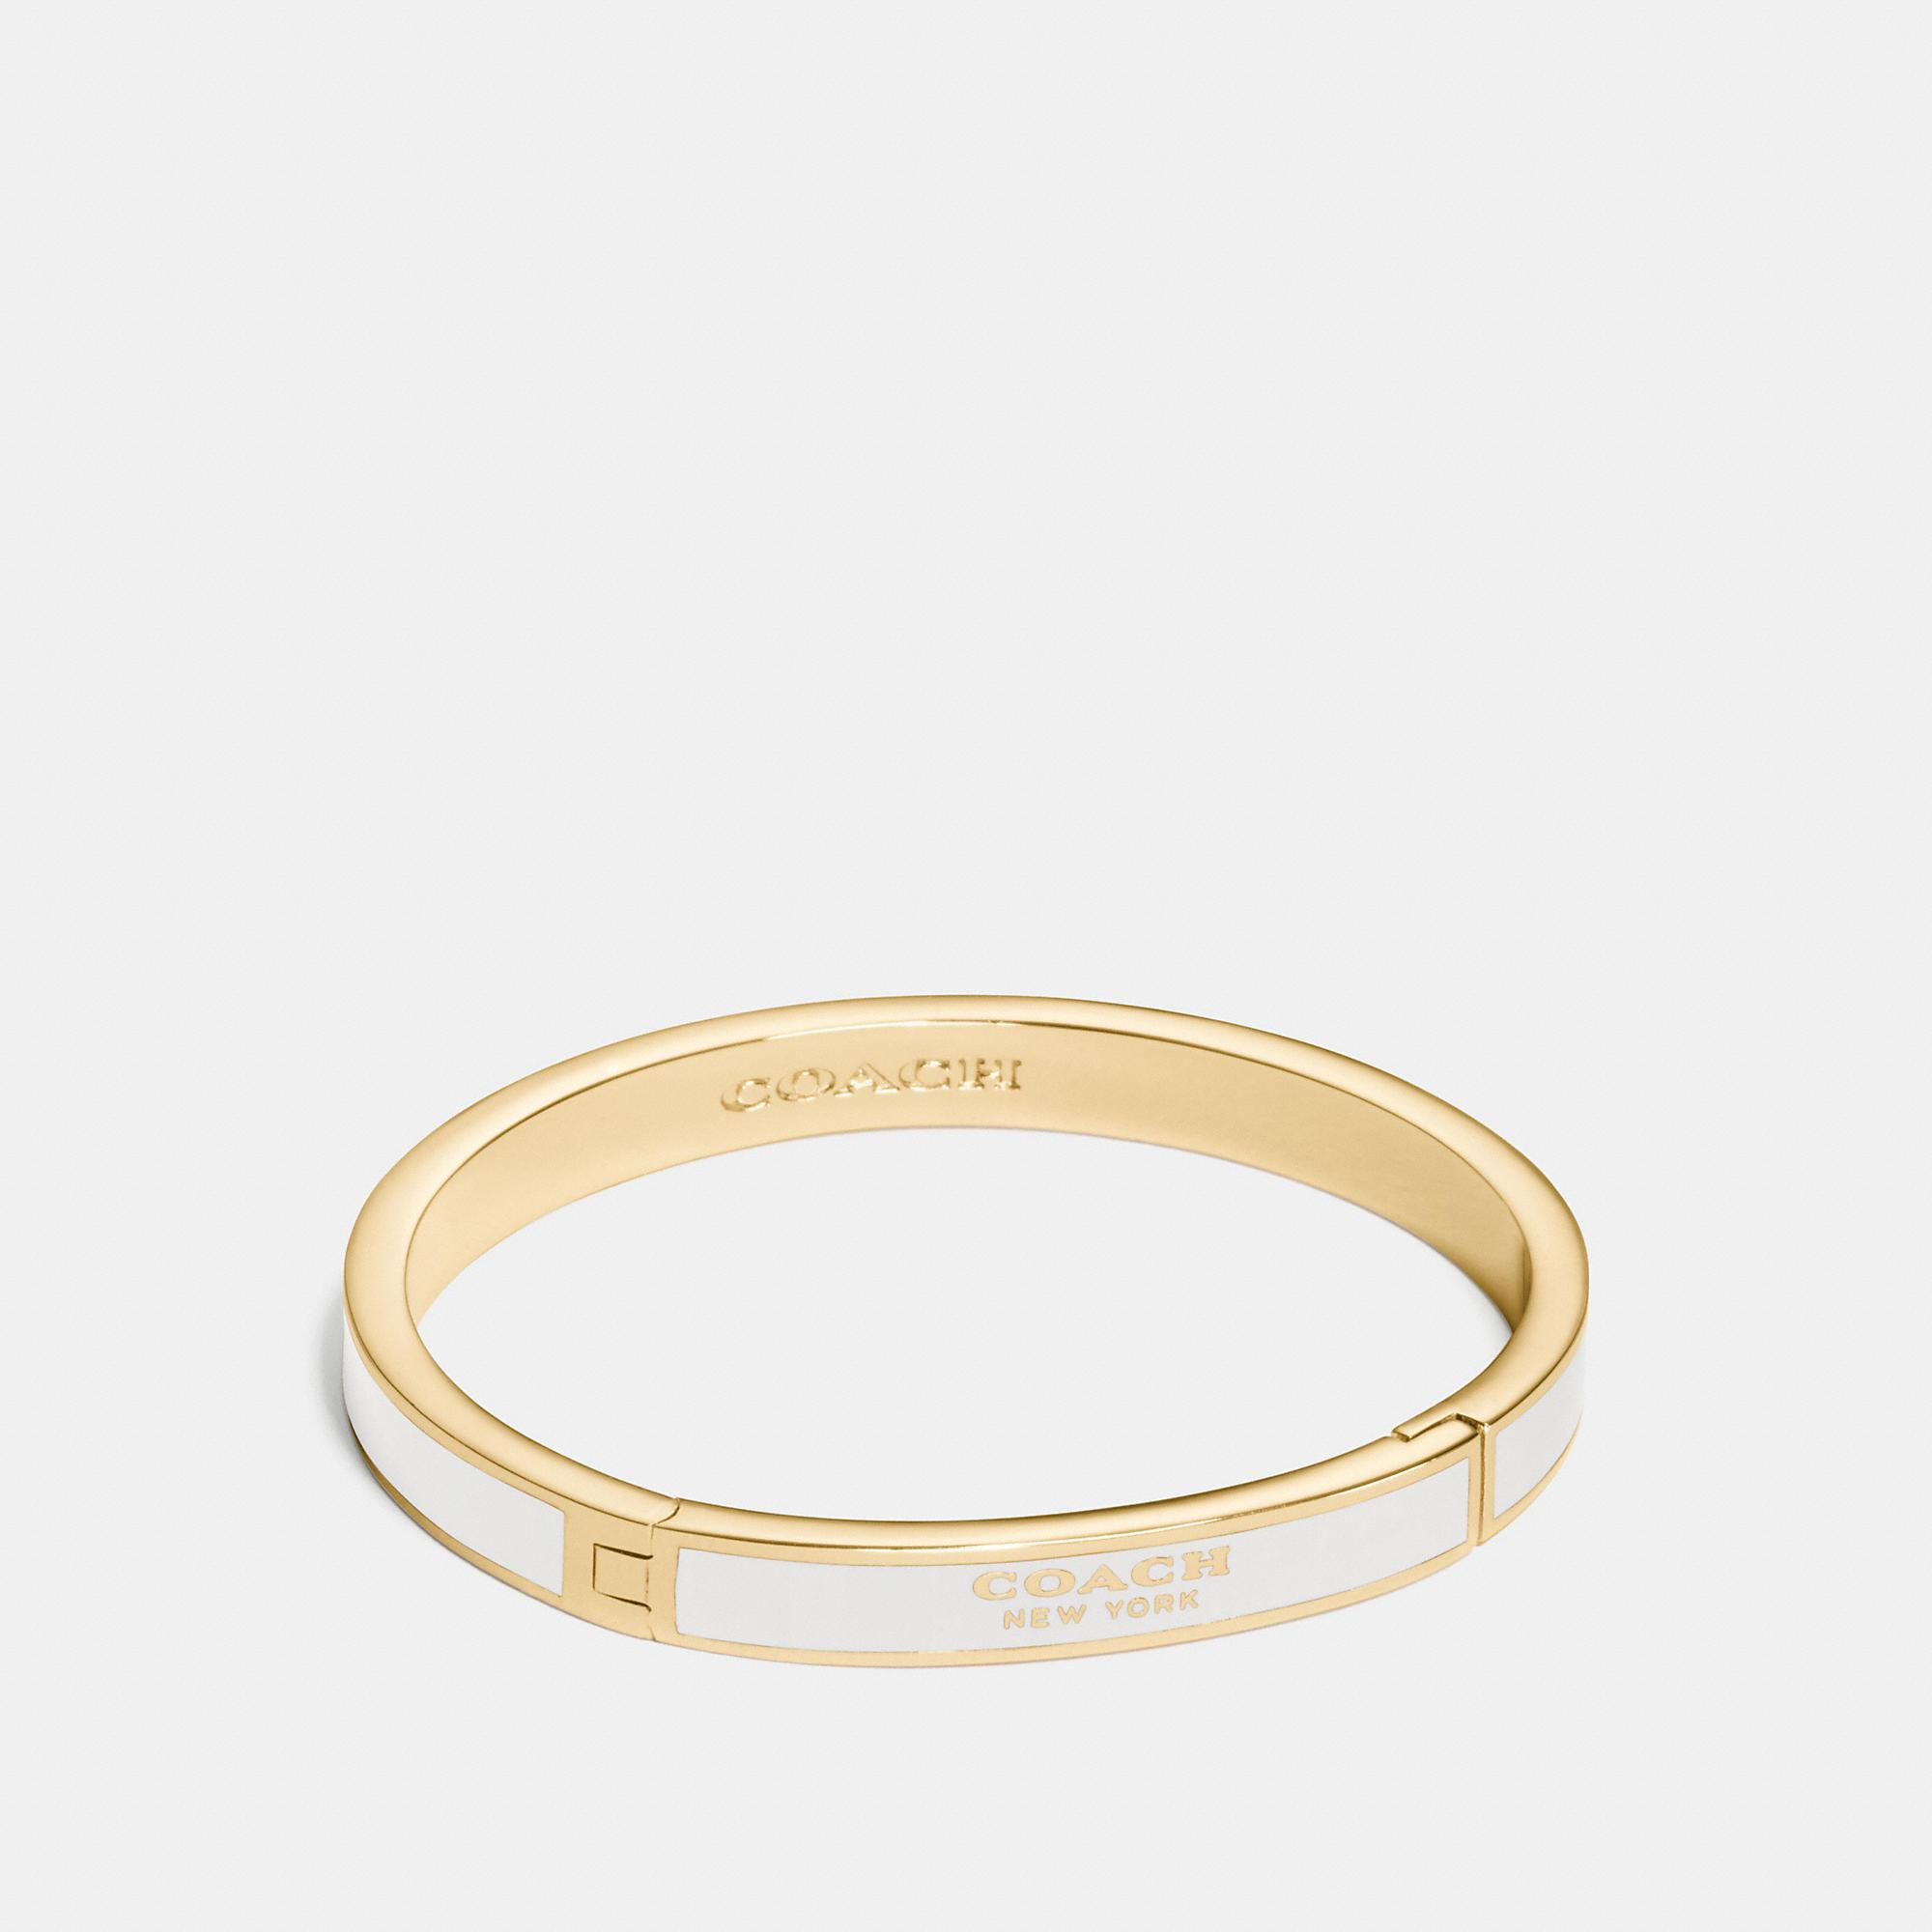 Coach Enamel Hinged Bangle In Chalk/gold